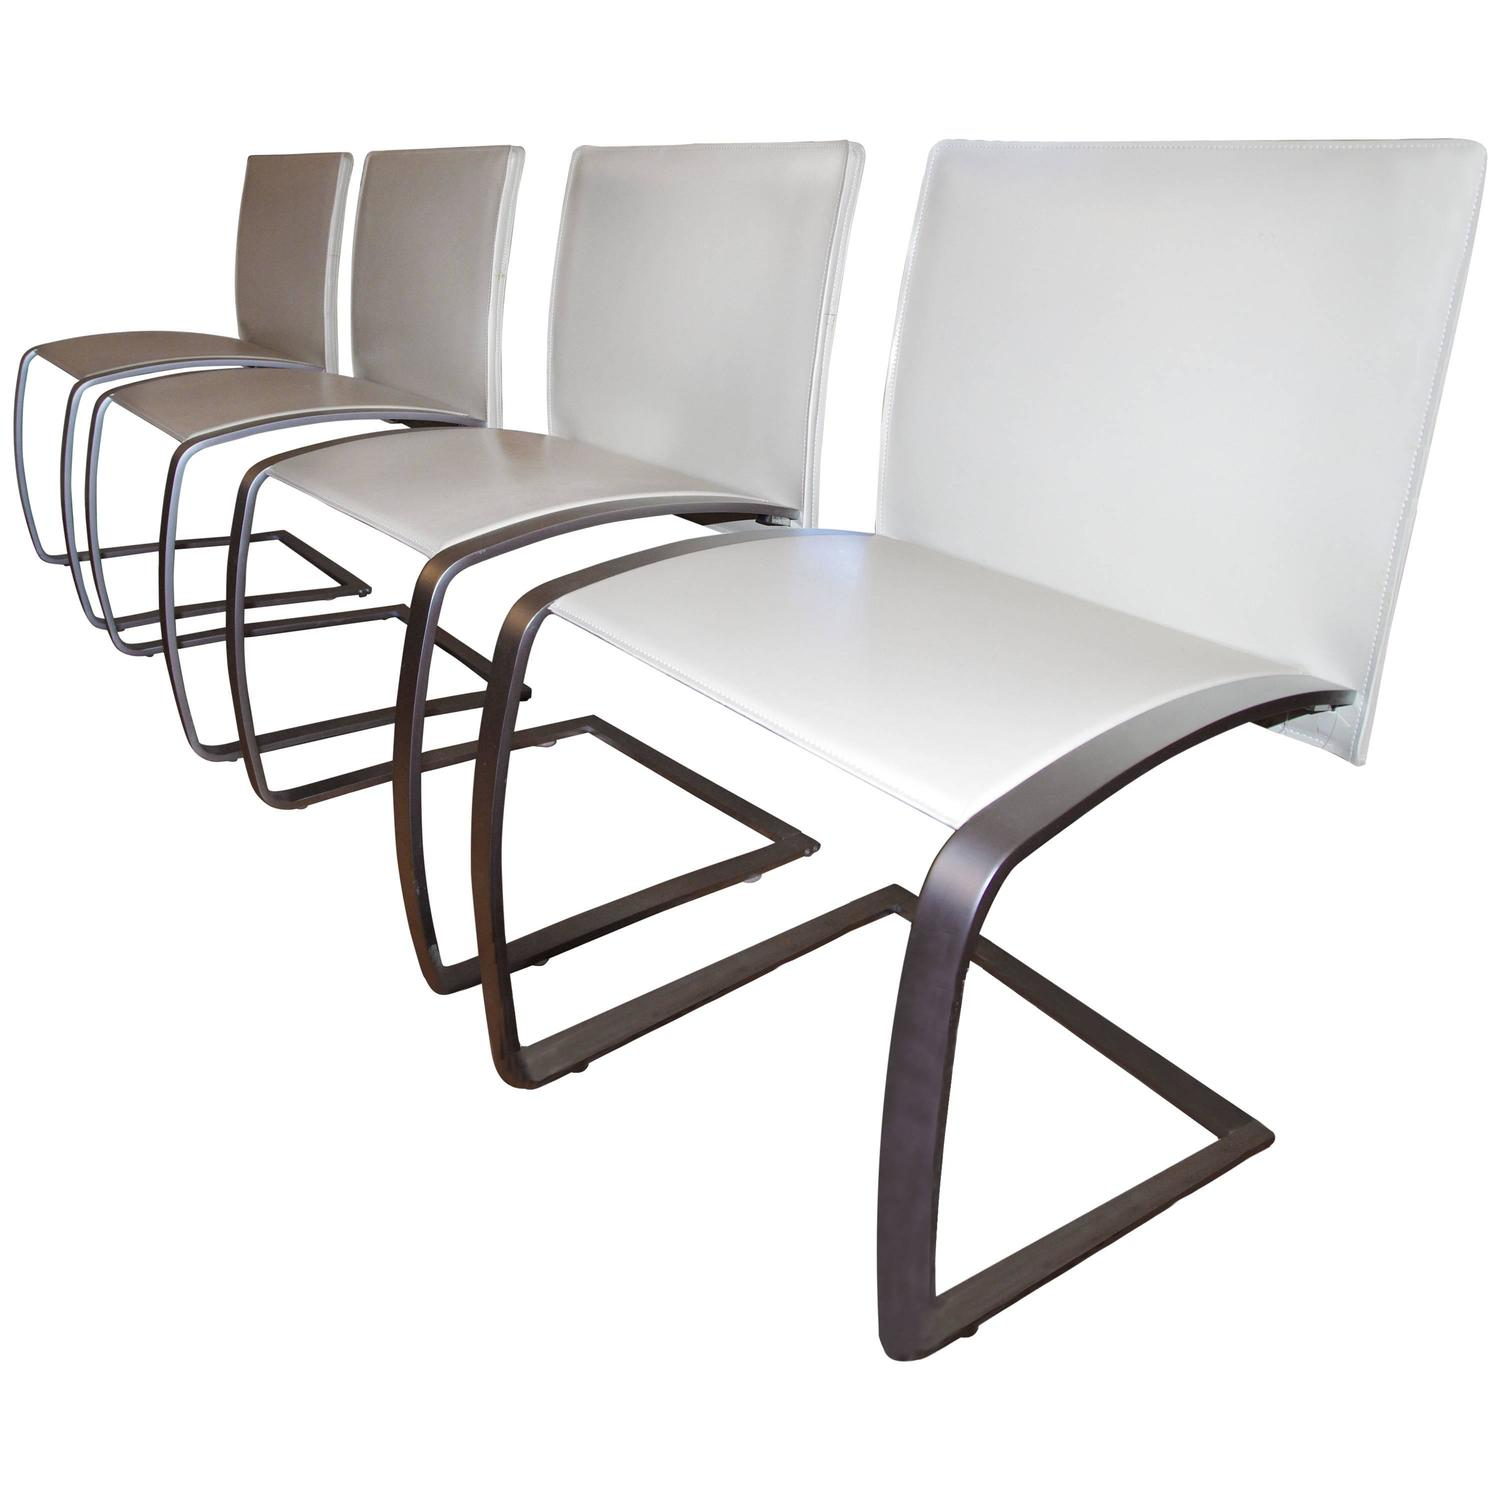 Italian modern dining chairs set of 4 leather and for Leather and steel dining chairs